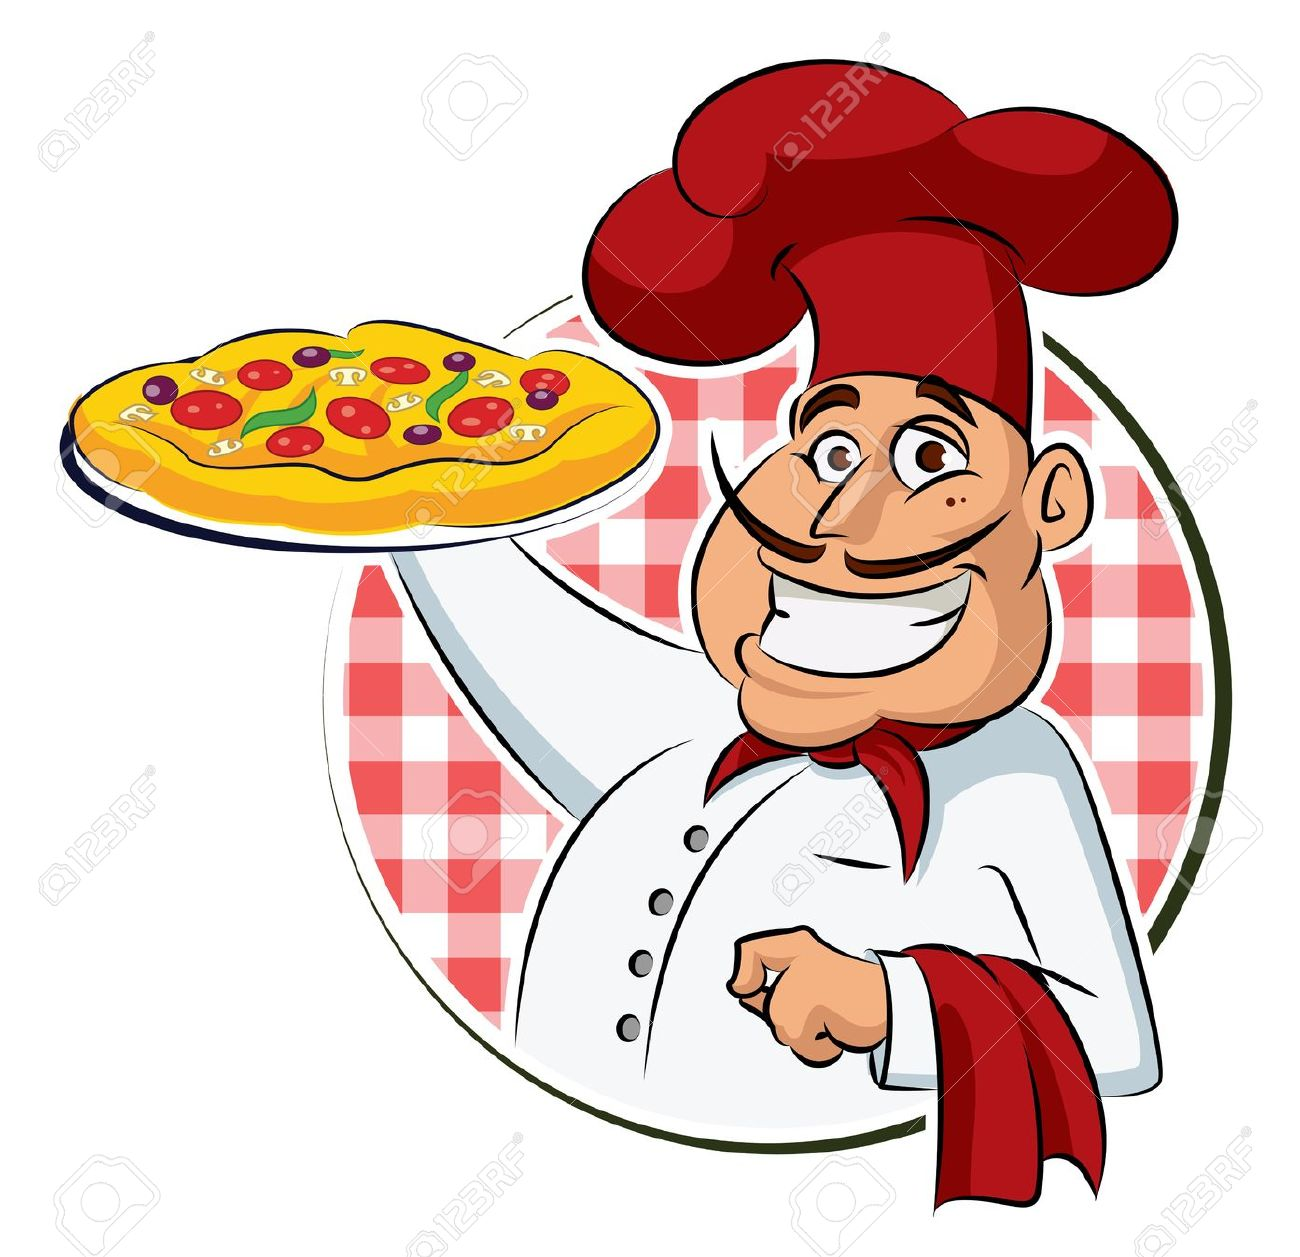 Pizza chef clipart picture free library Cook Pizza Royalty Free Cliparts, Vectors, And Stock Illustration ... picture free library